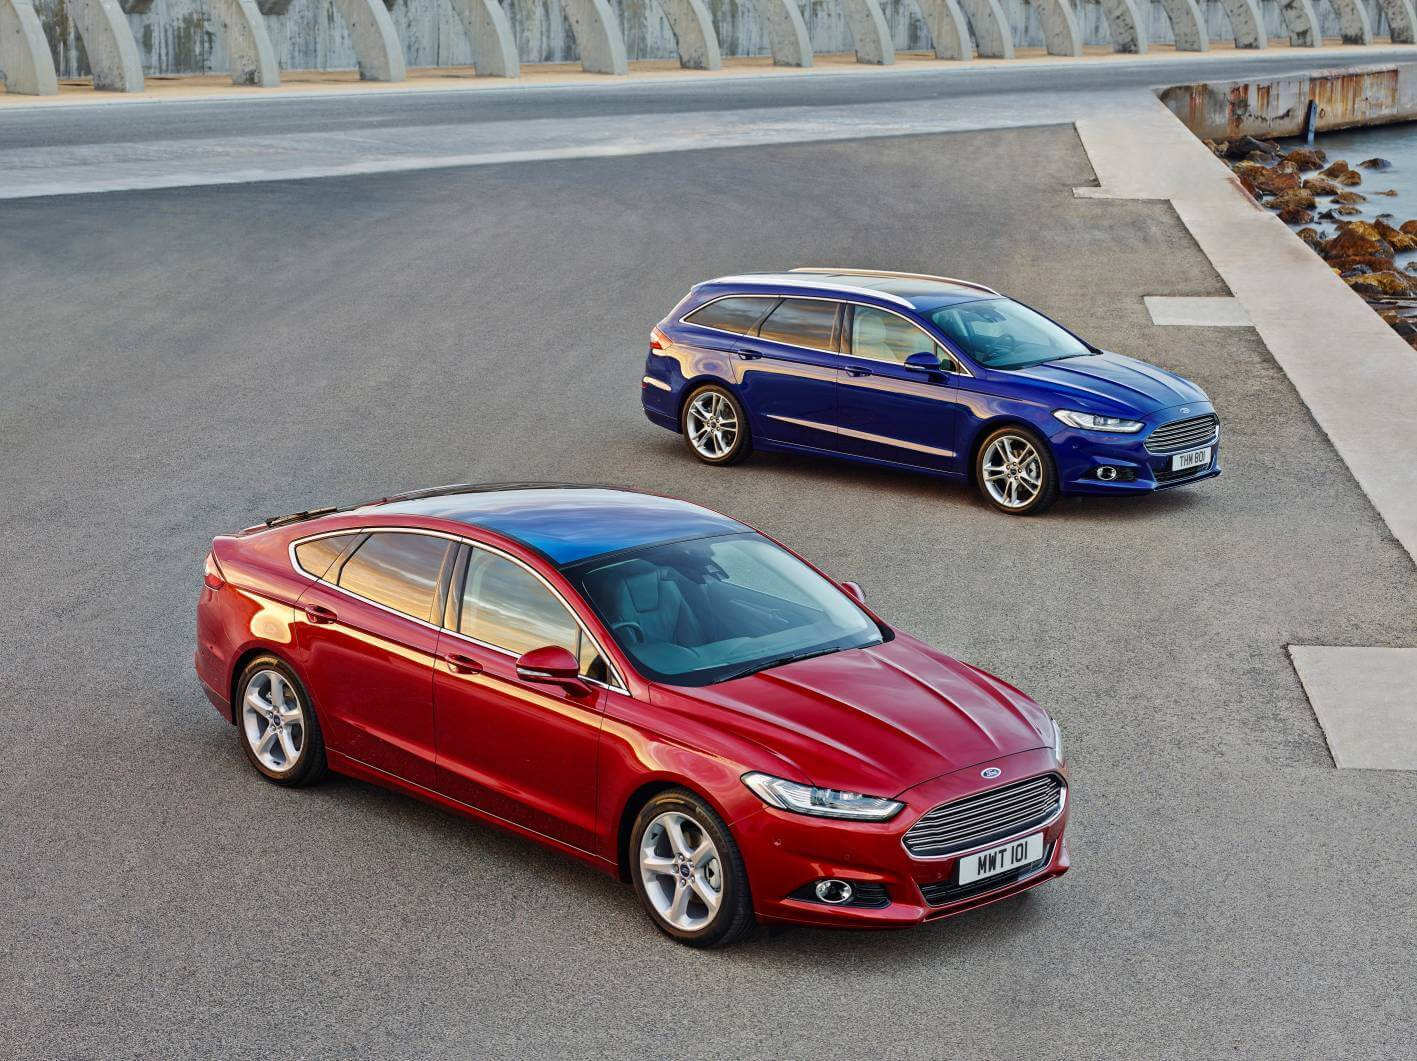 2015 ford mondeo pricing and details announced practical motoring. Black Bedroom Furniture Sets. Home Design Ideas